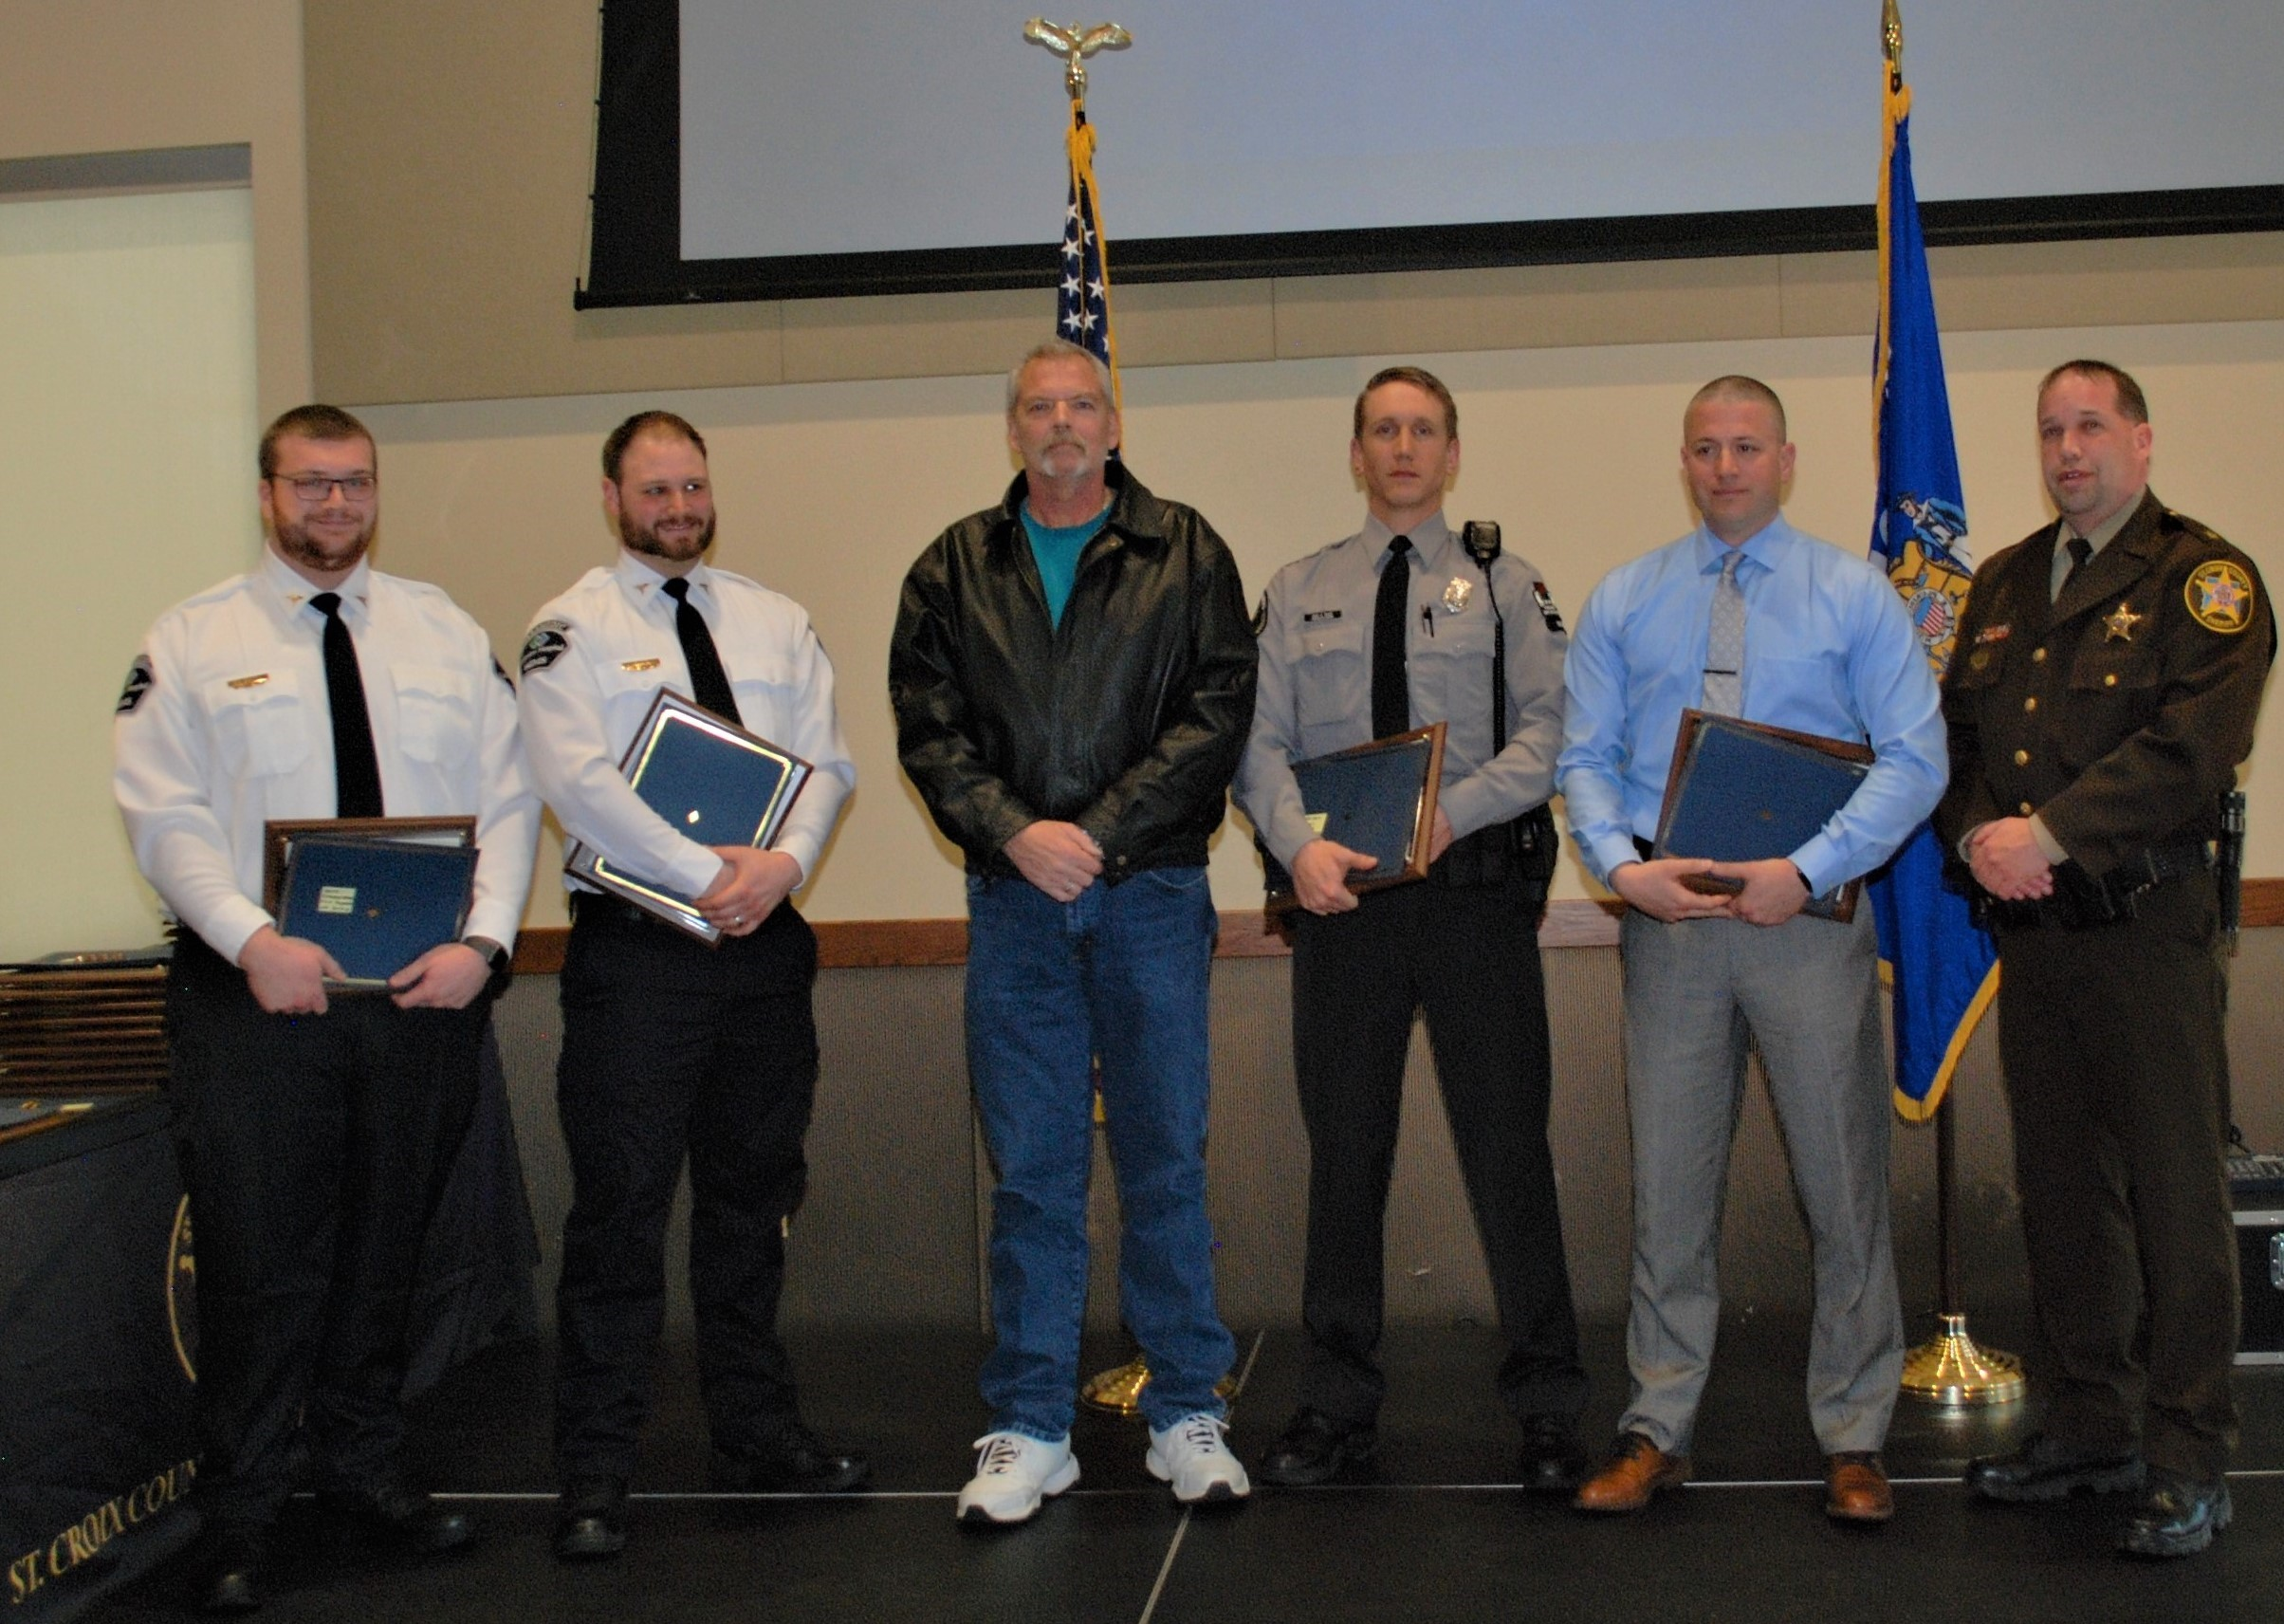 From left to right, Lakeview Paramedics Kevin Zimmerman and Jeff Price, Keith Butterfield, Warden Isaac Kruse, St. Croix County Deputy Nick Krueger and St. Croix County Sheriff Scott Knudson.